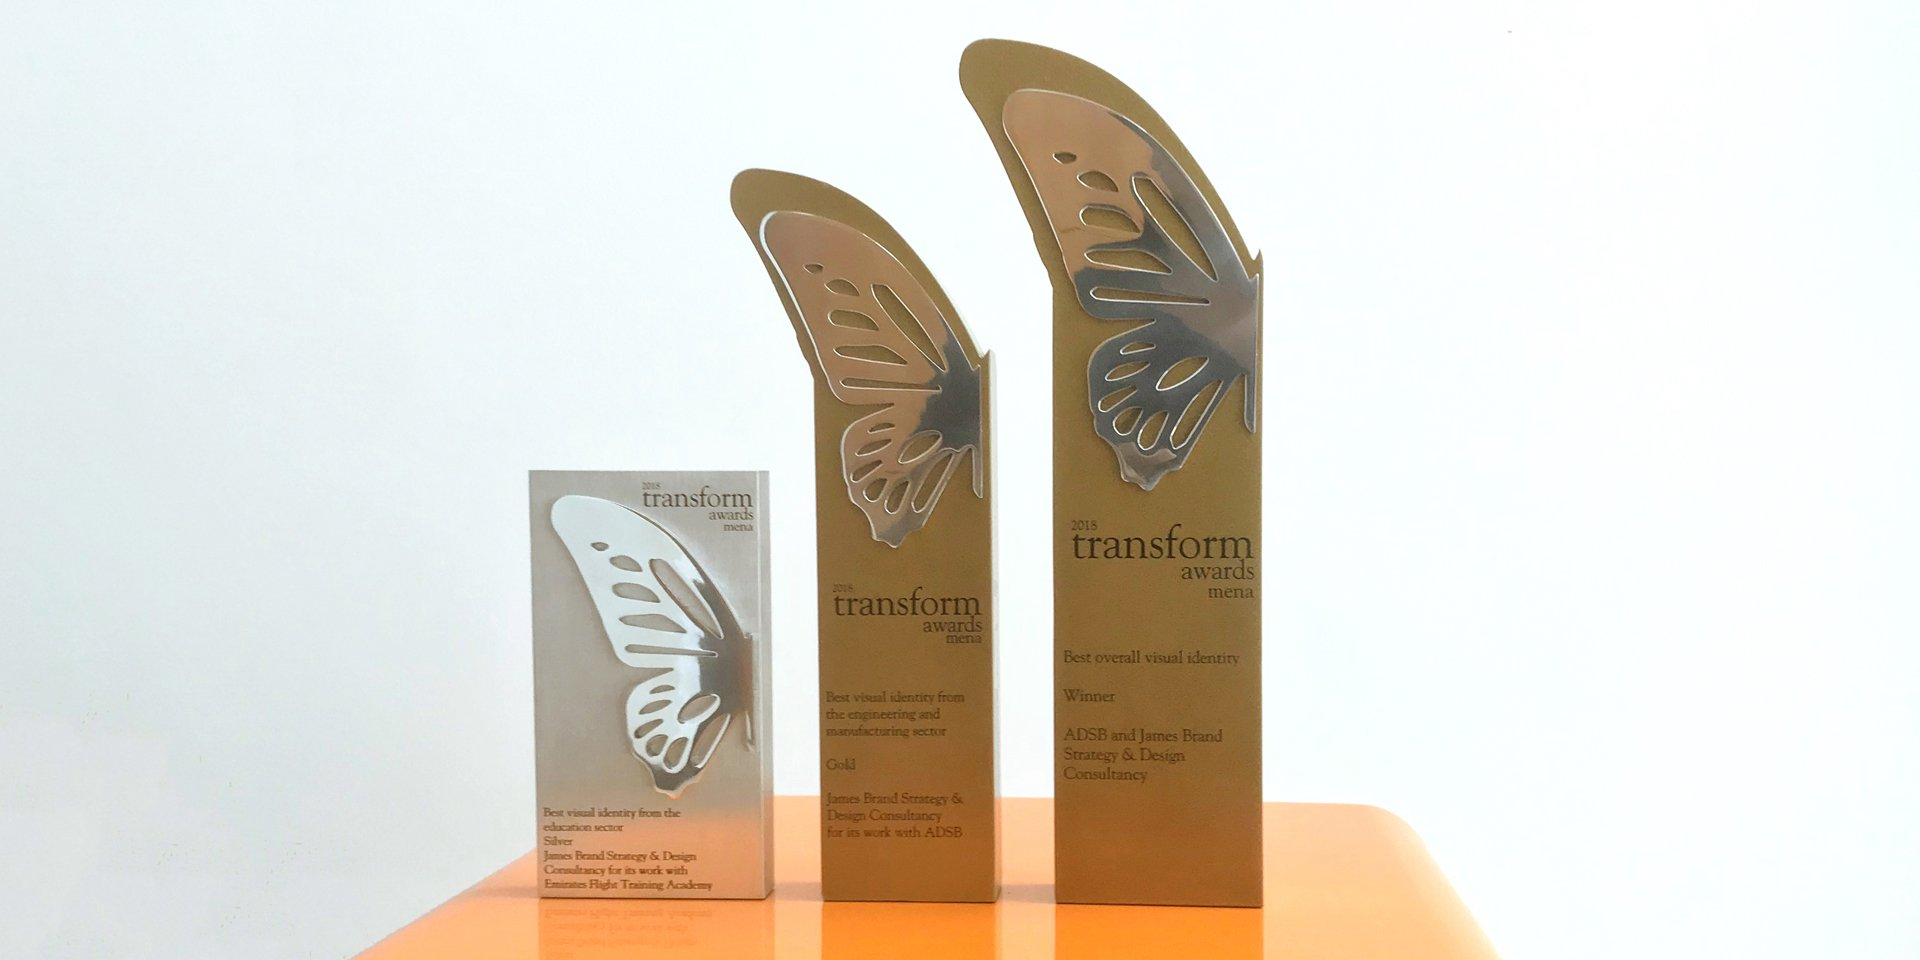 James Awarded Prestigious Award For Best Overall Visual Identity